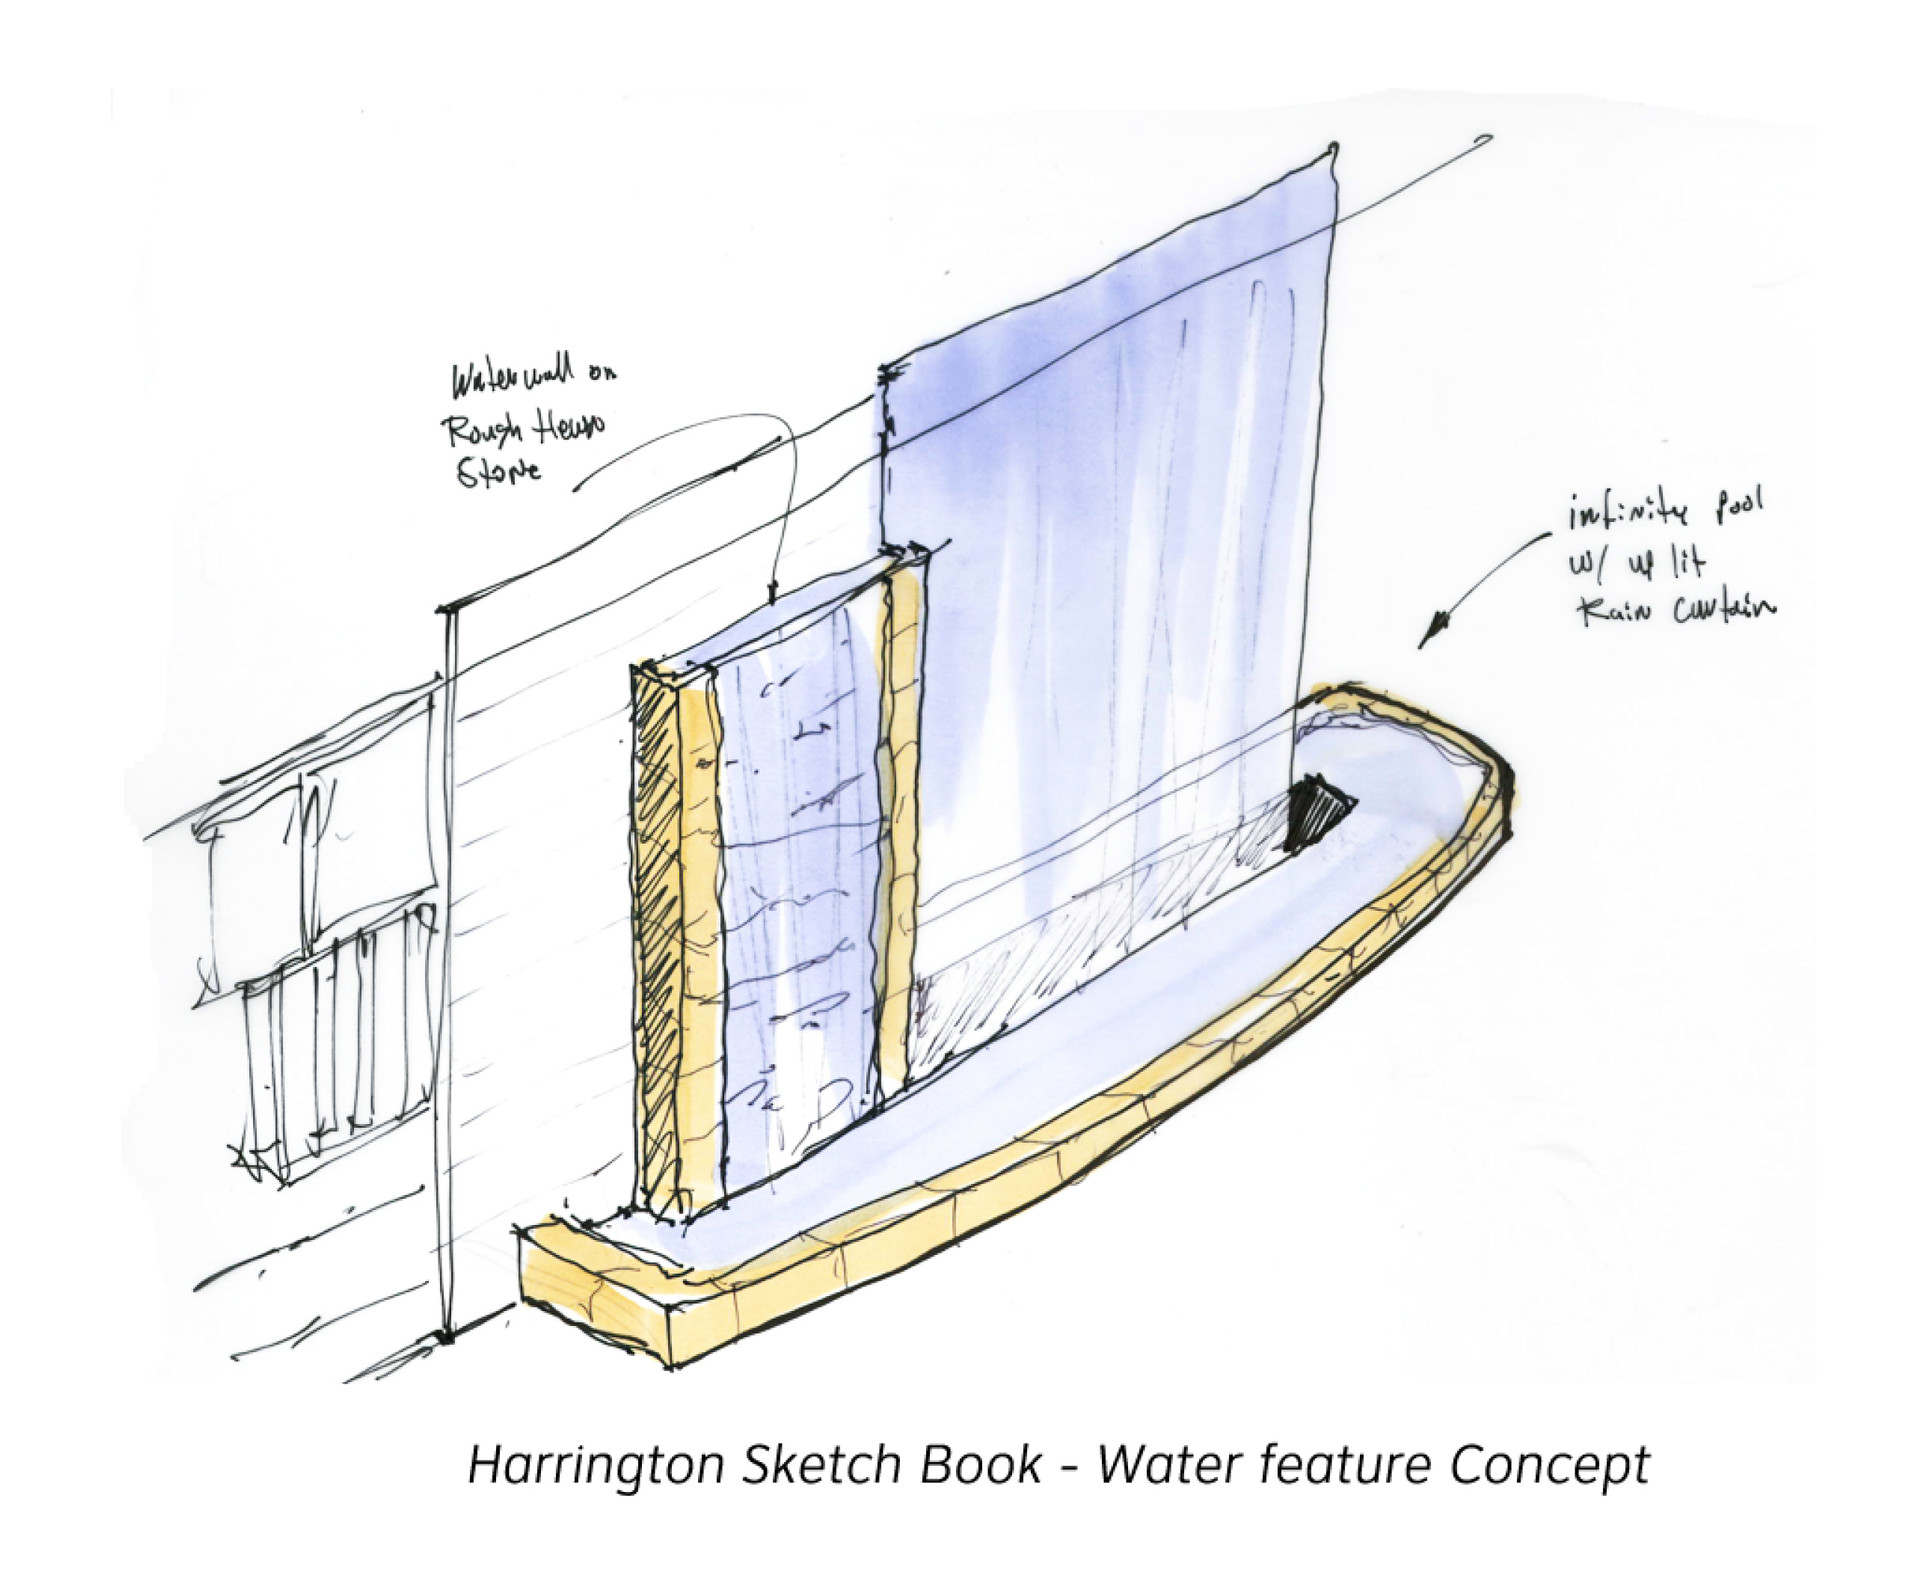 Water Feature Concept